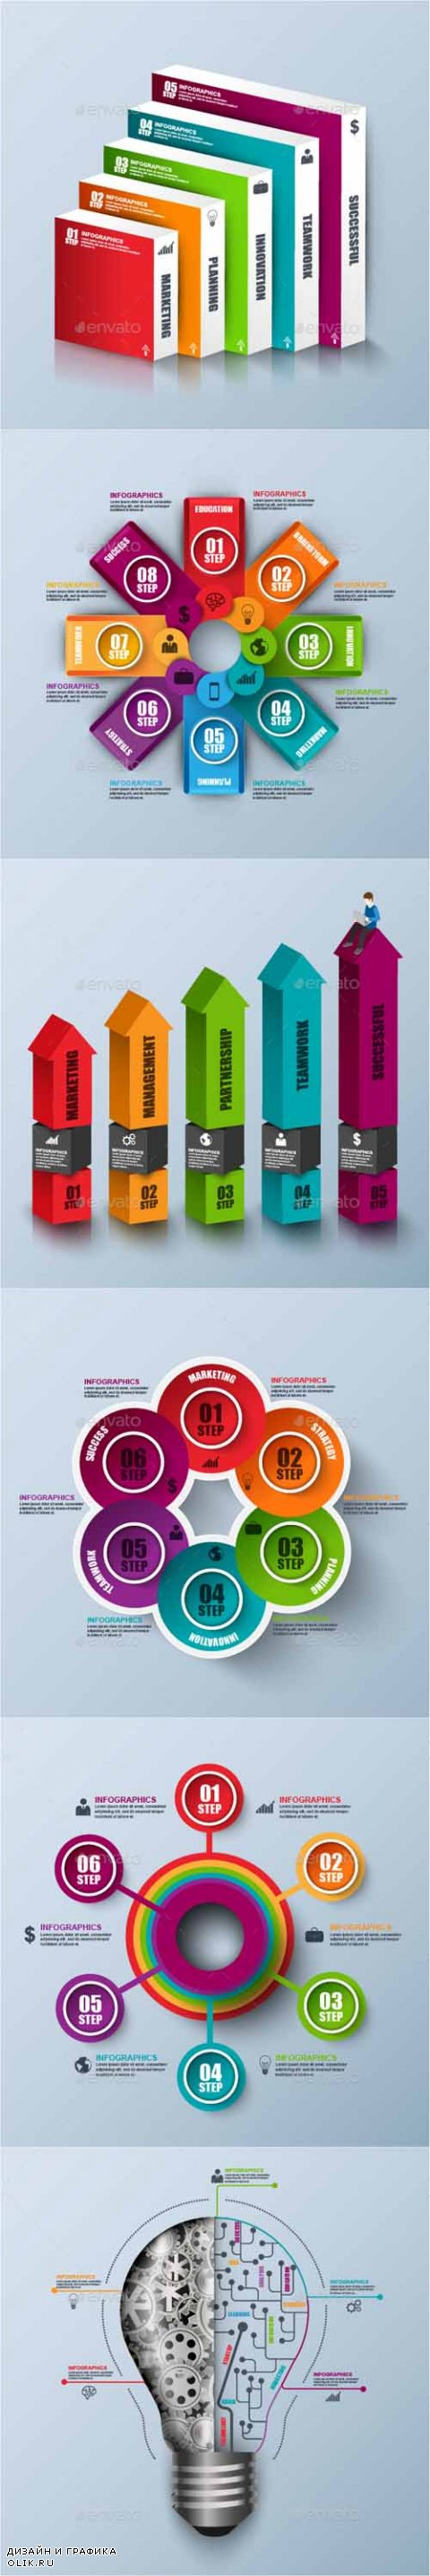 Set of Abstract 3D Digital Business Infographic 17837122